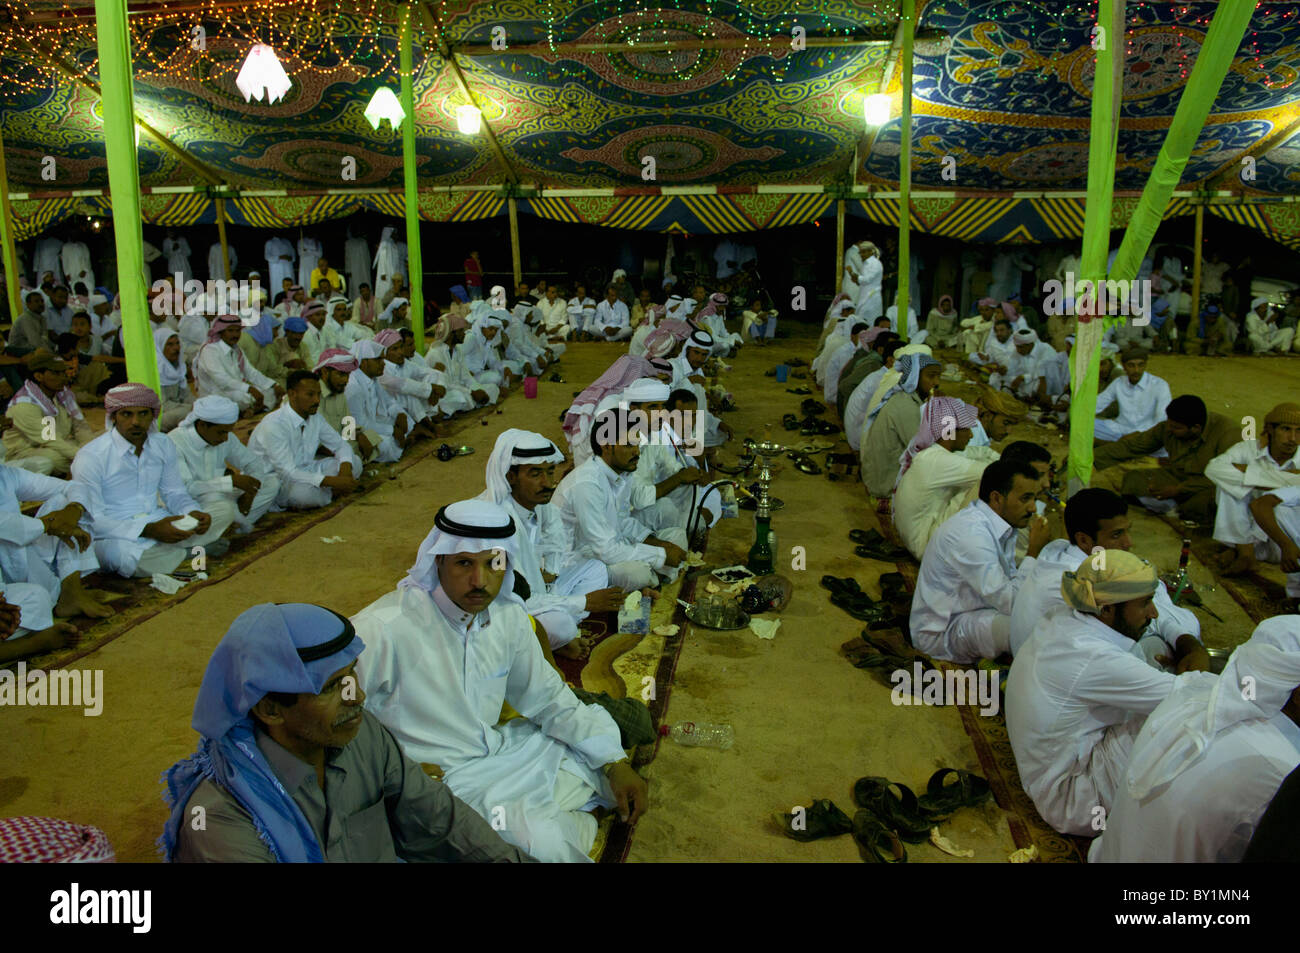 Seated guests await entertainment during a traditional Bedouin wedding celebration. El Tur, Sinai Peninsula, Egypt - Stock Image